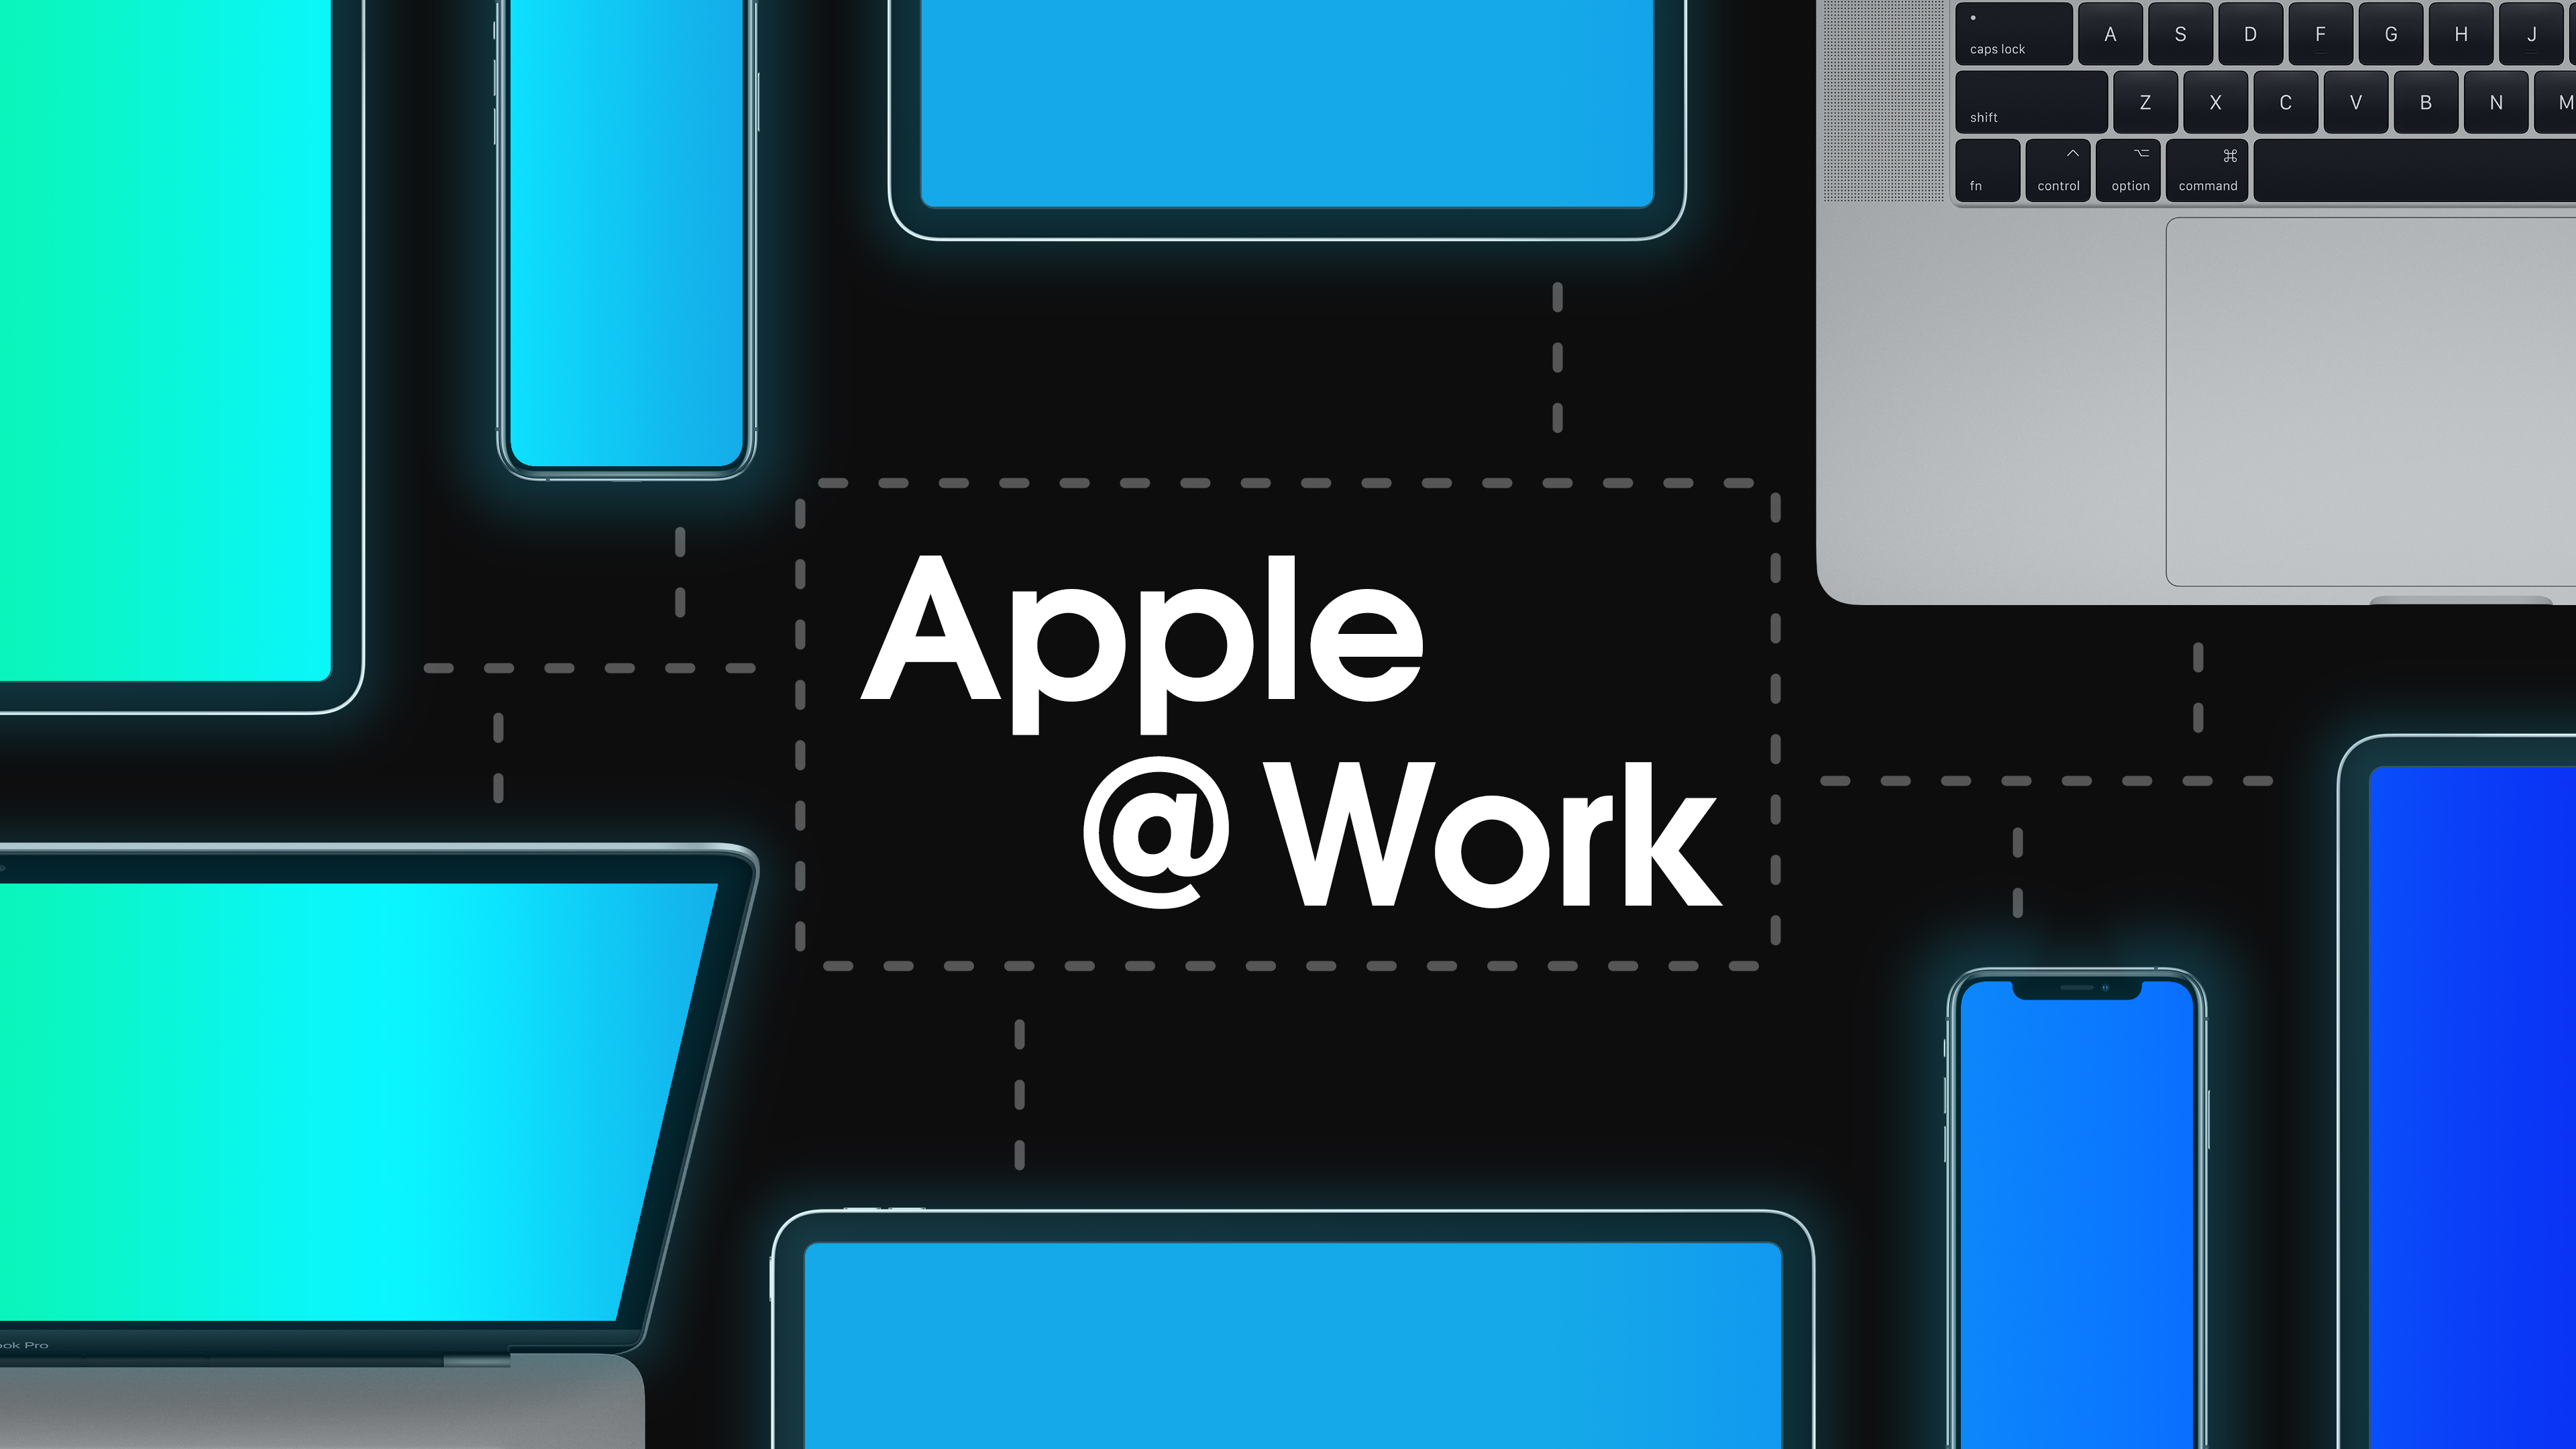 Apple @ Work Podcast: What role does an MSP play when looking at MDM integration?